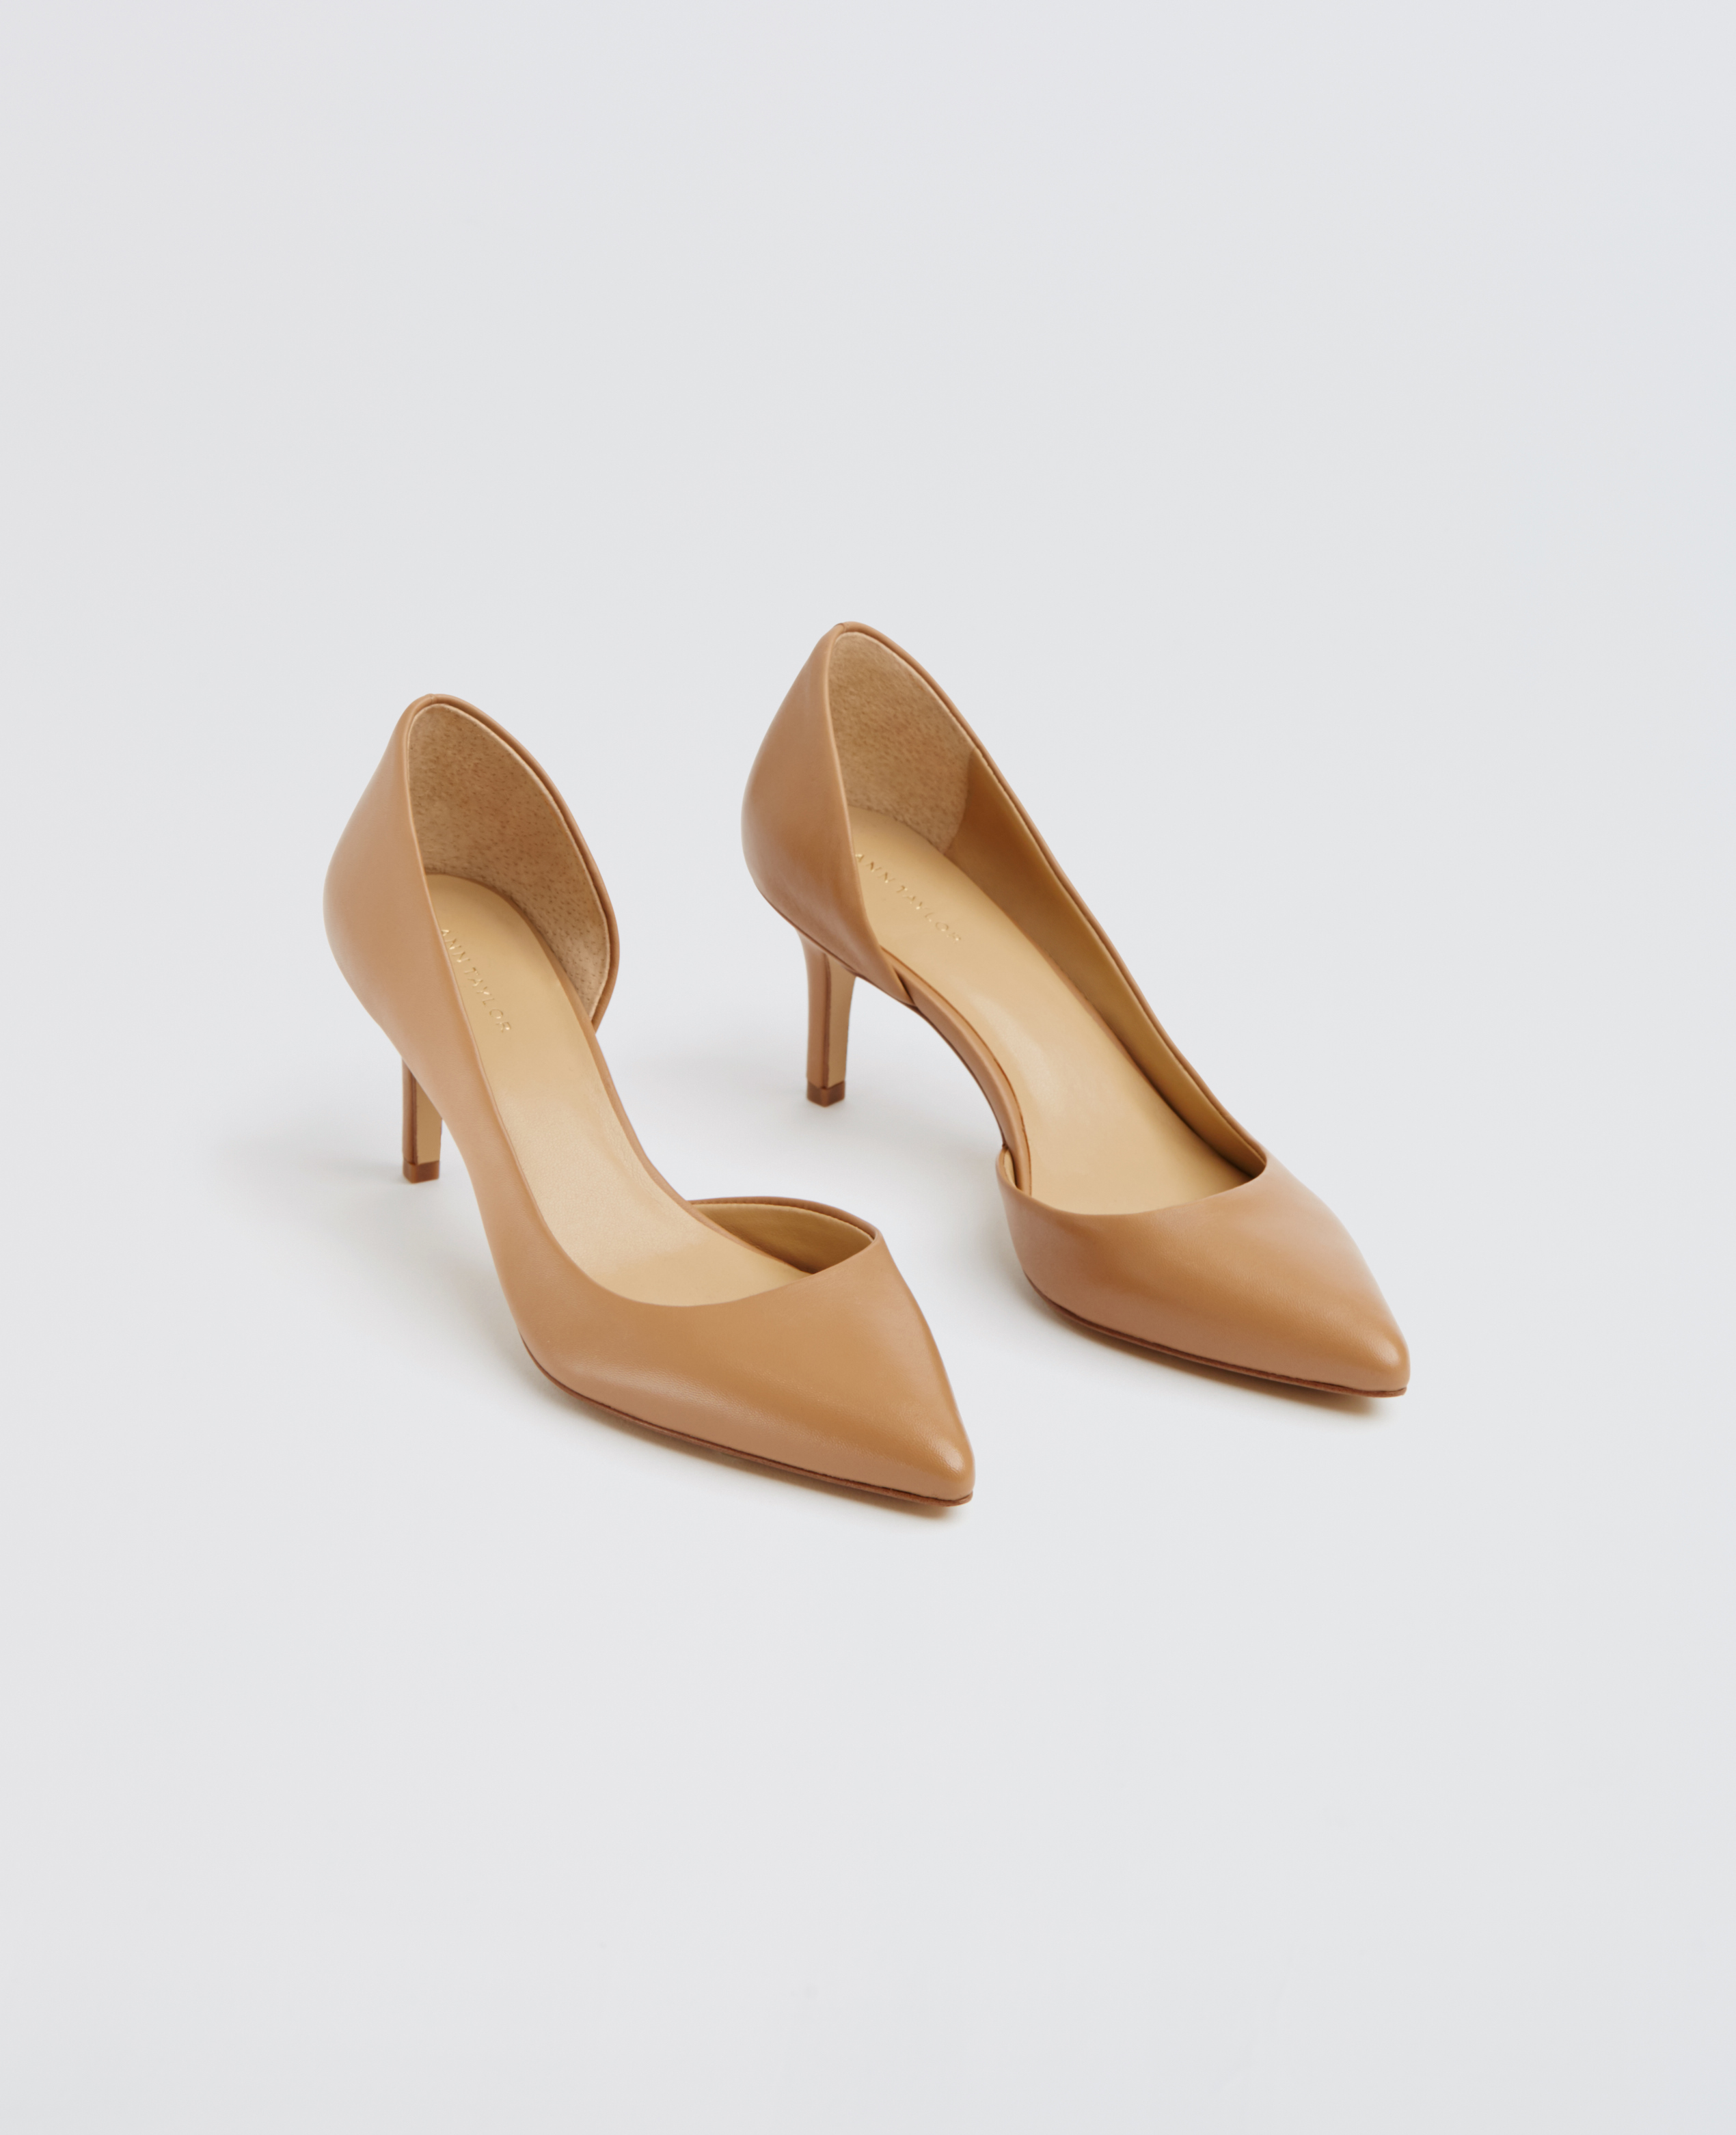 Ann taylor Mari D'orsay Leather Kitten Heels in Natural | Lyst